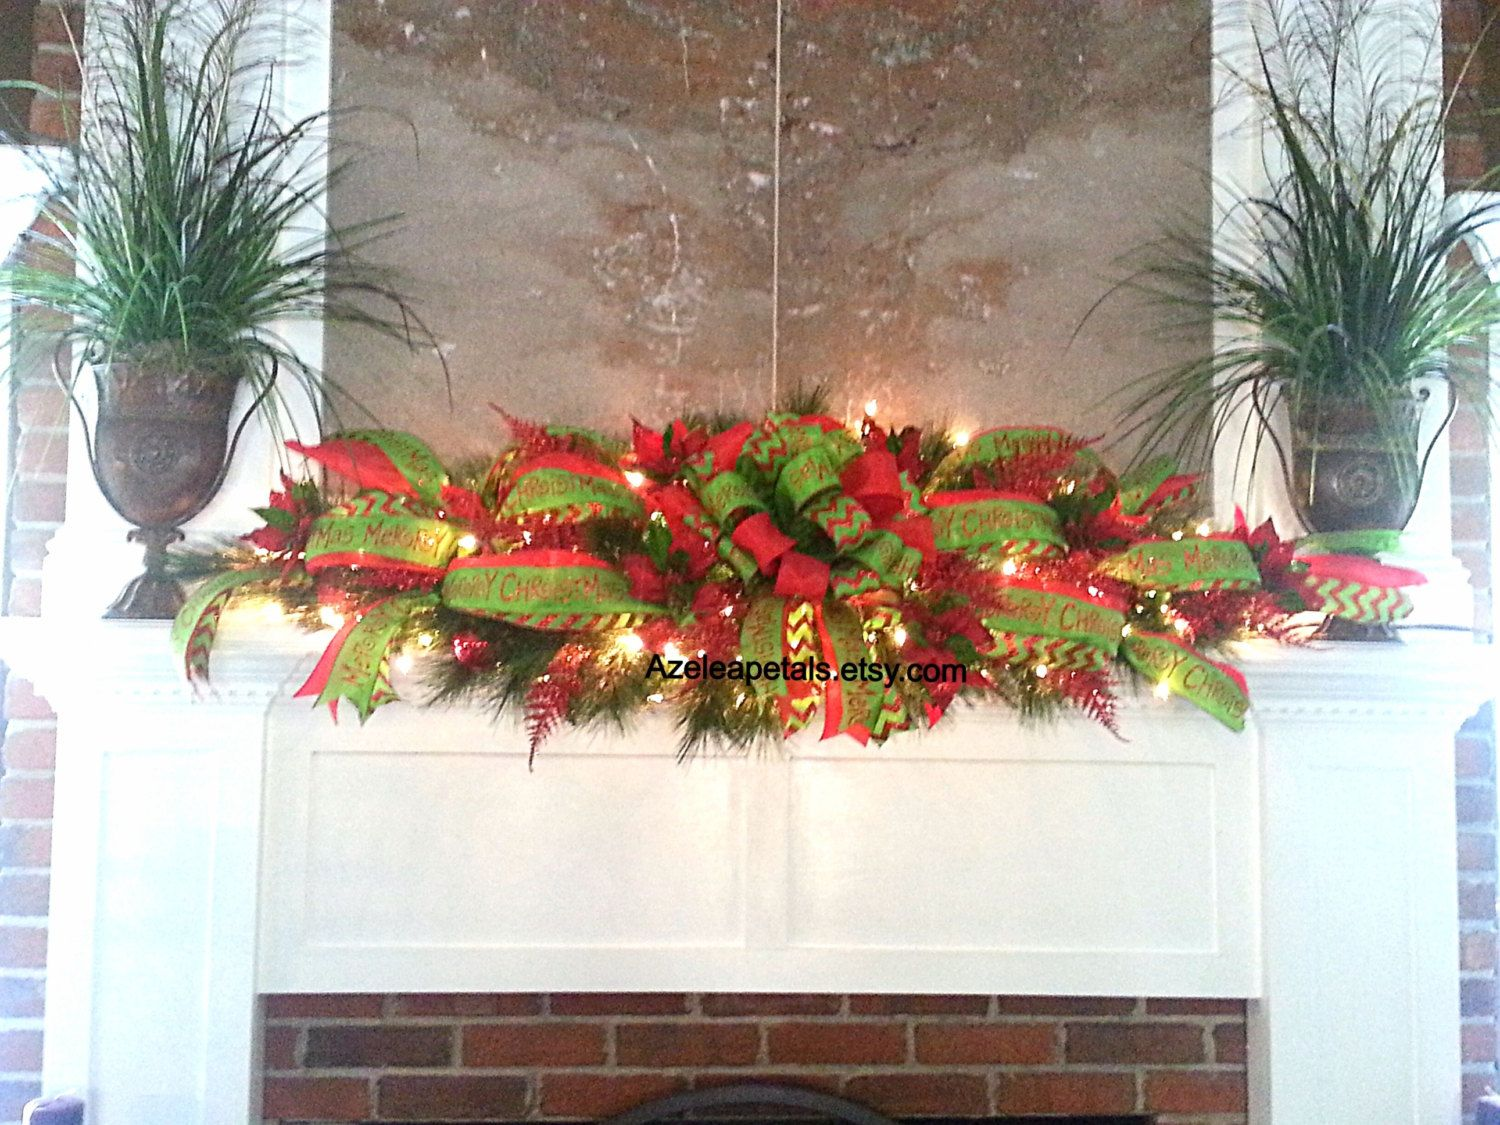 Xxl garland swag christmas fireplace mantle by for Christmas garland on fireplace